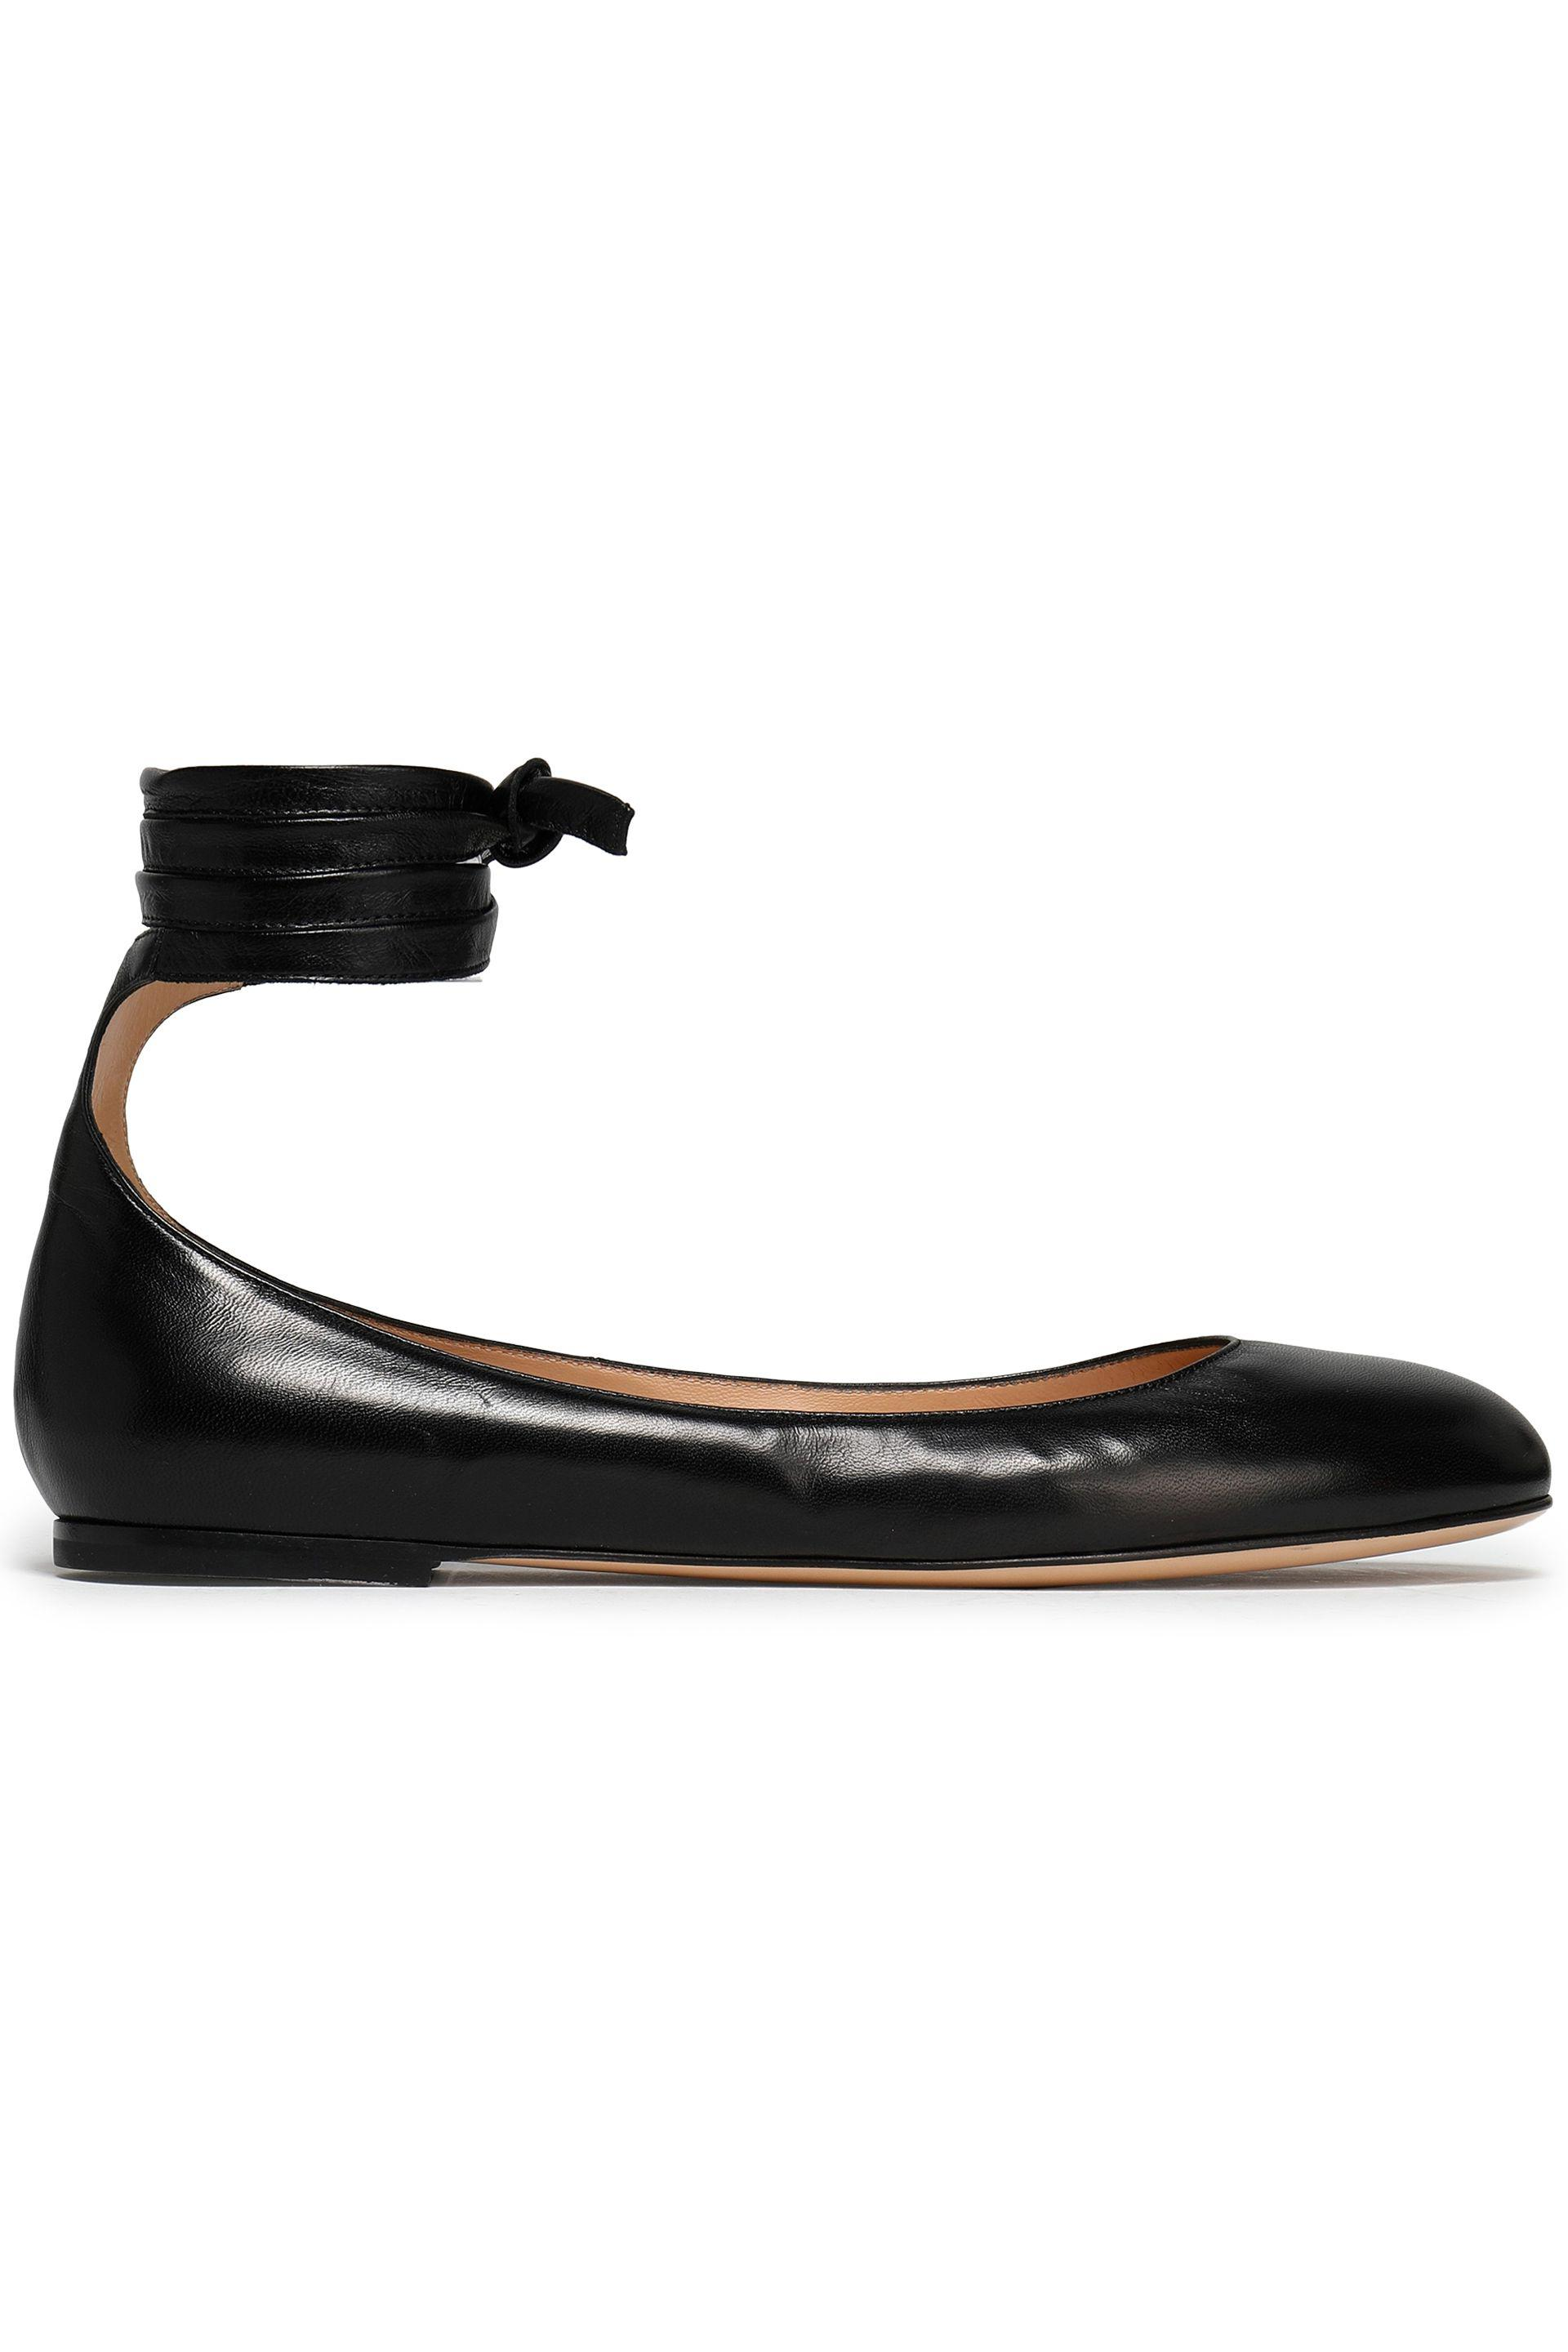 f729ab912760 Gianvito Rossi Carla Lace-up Leather Ballet Flats in Black - Lyst